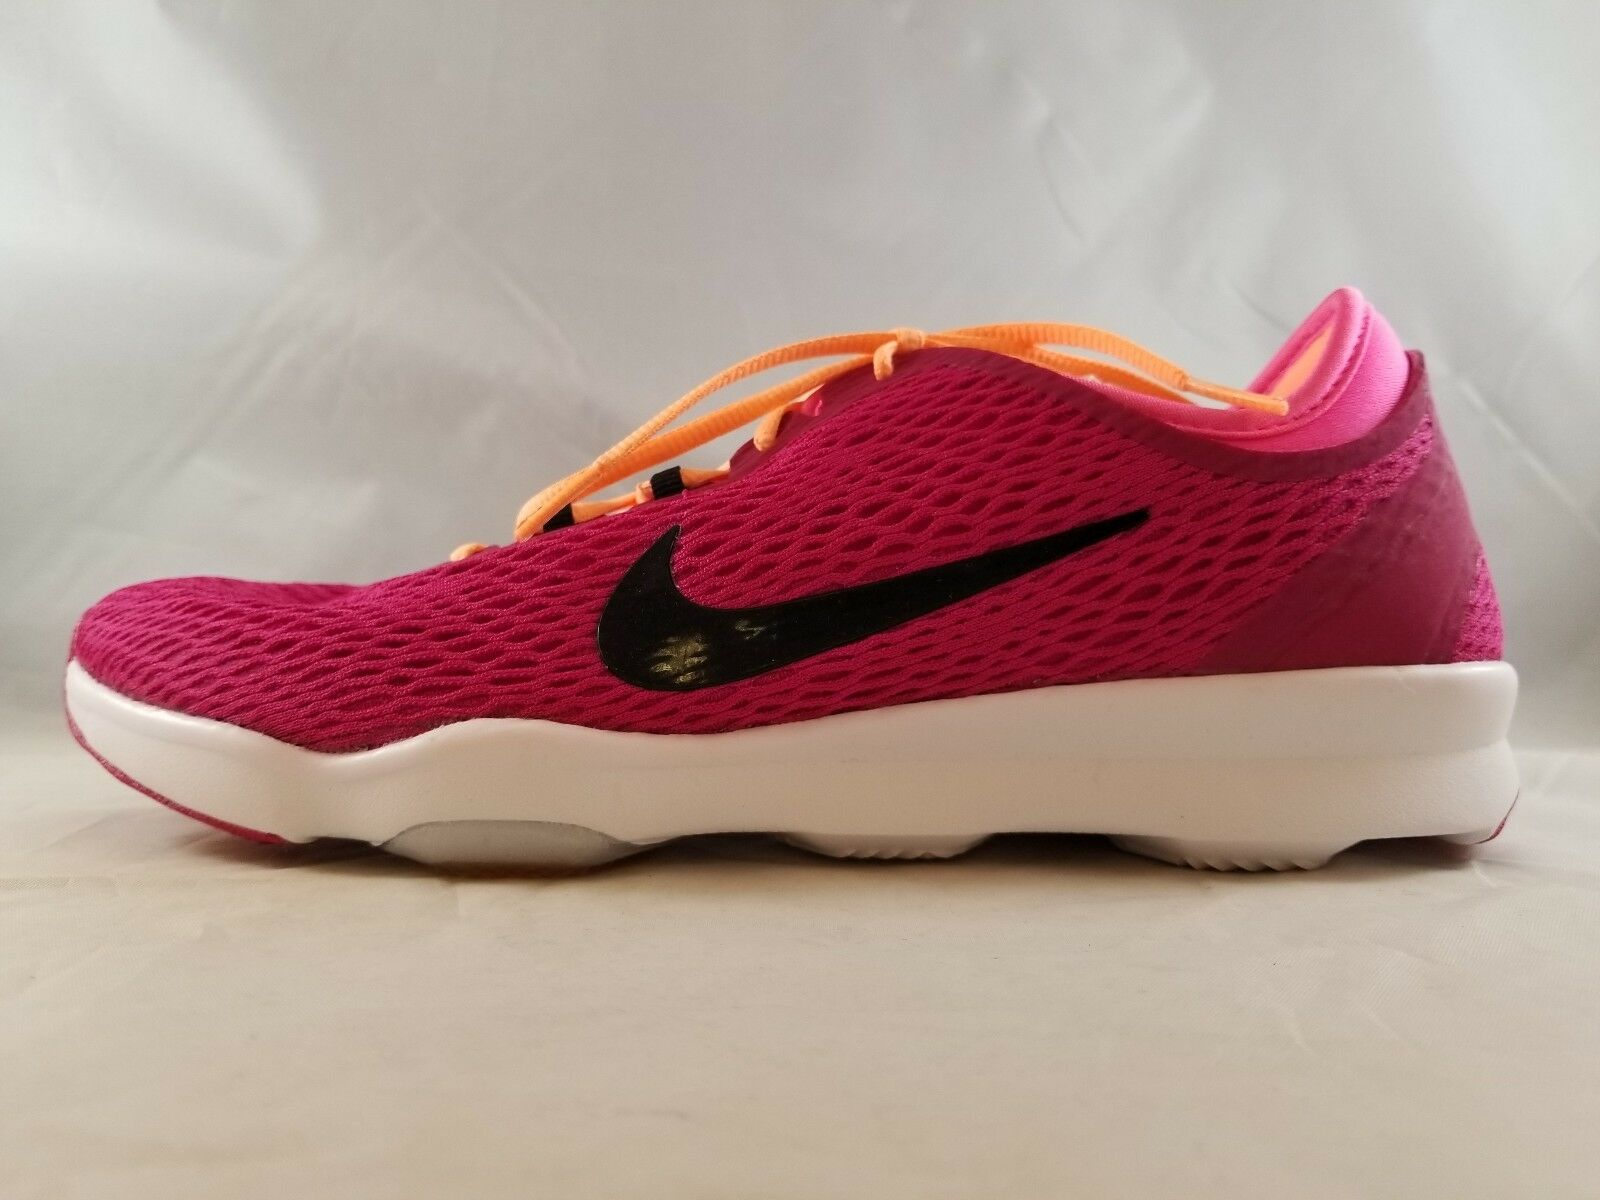 Nike Zoom Fit Women's Running Shoe 704658 602 Comfortable Wild casual shoes